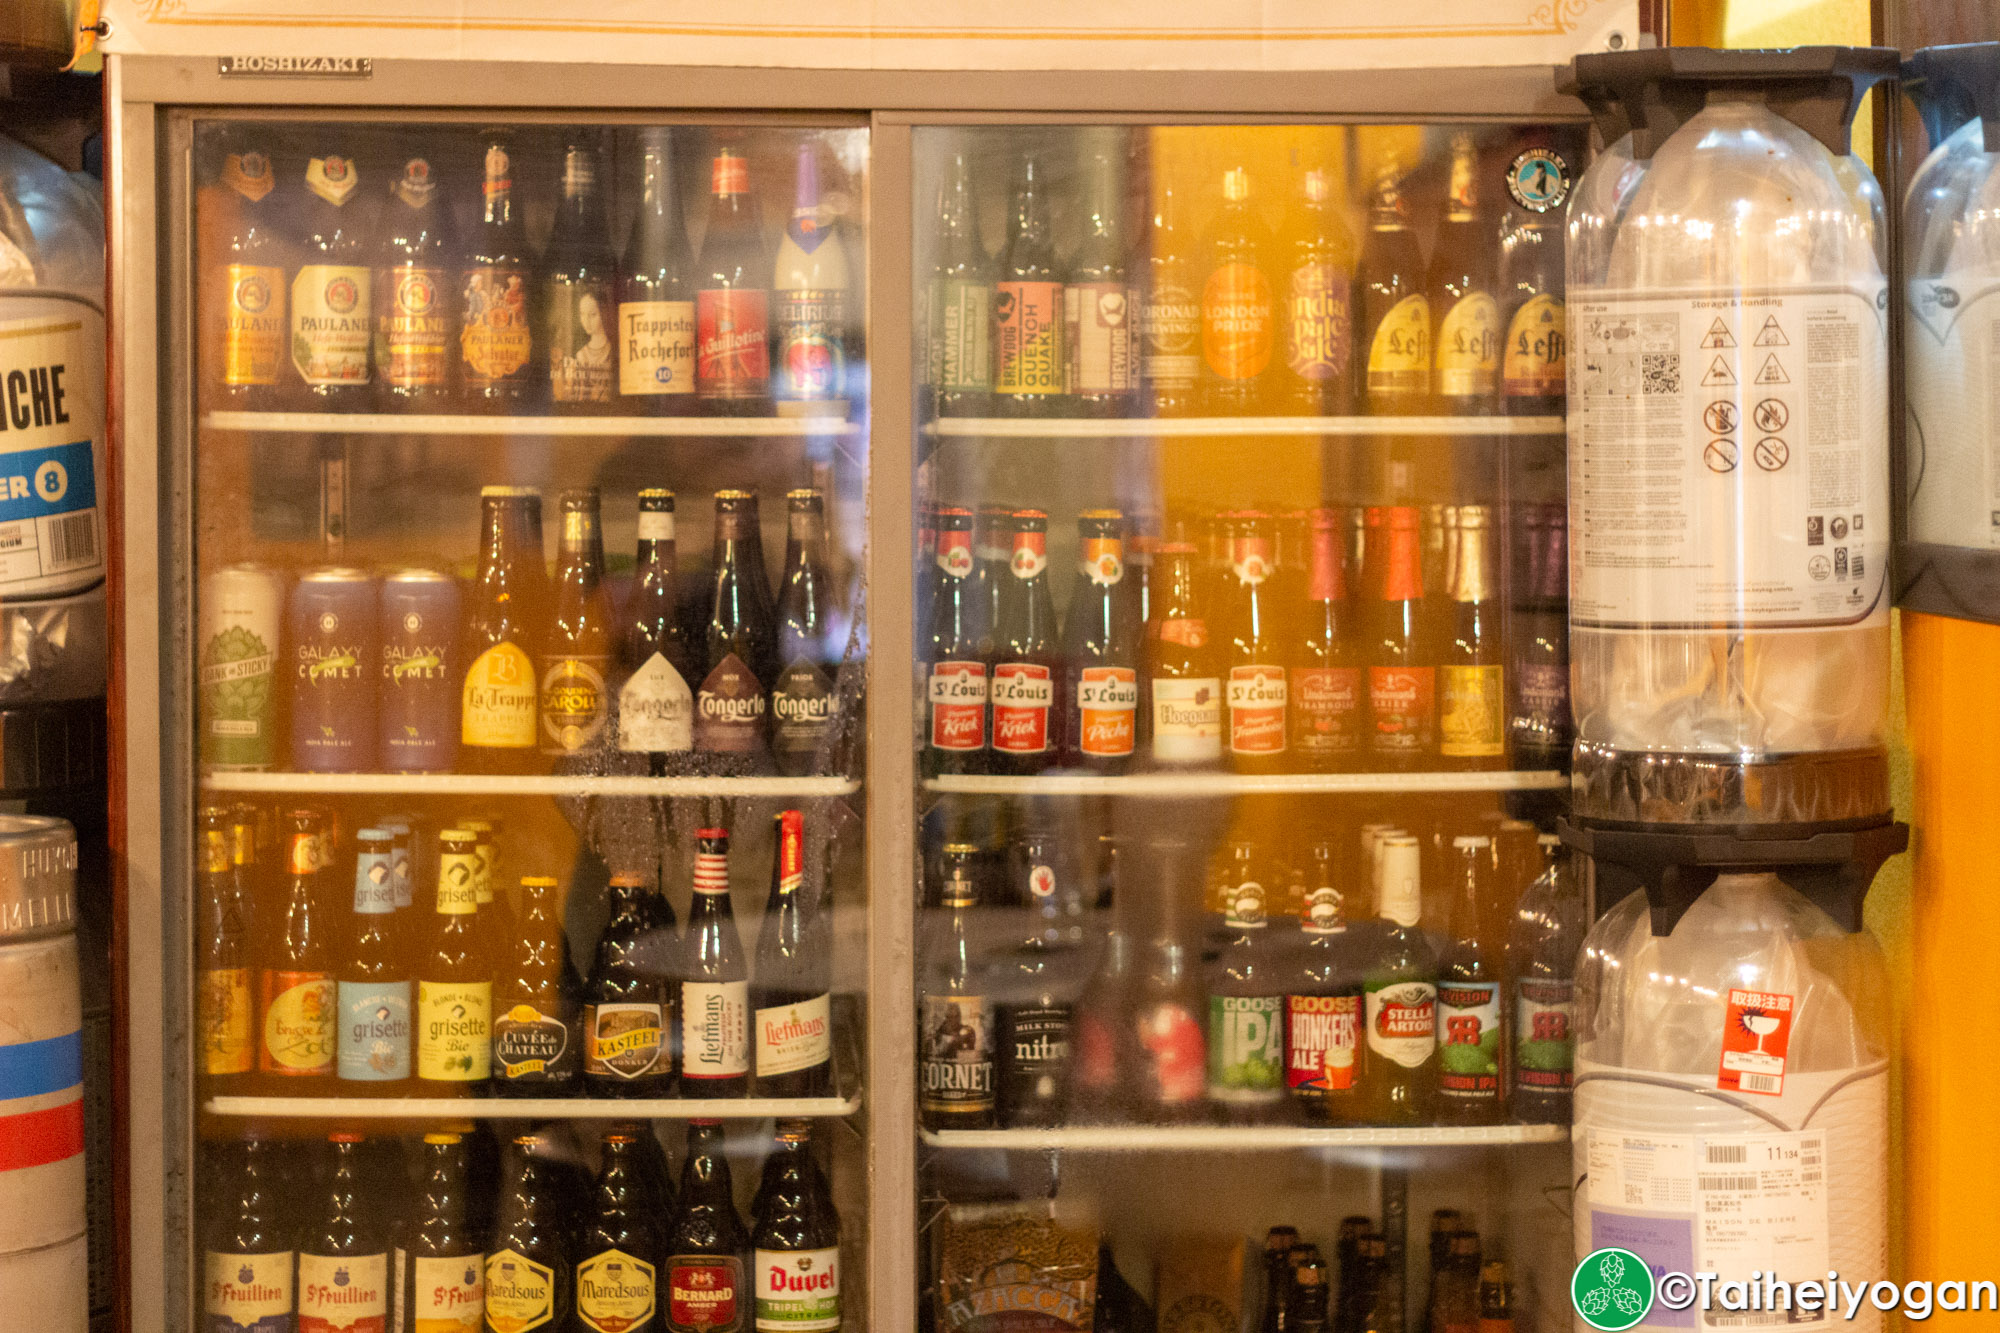 Maison de Biere - Interior - Bottled Craft Beer